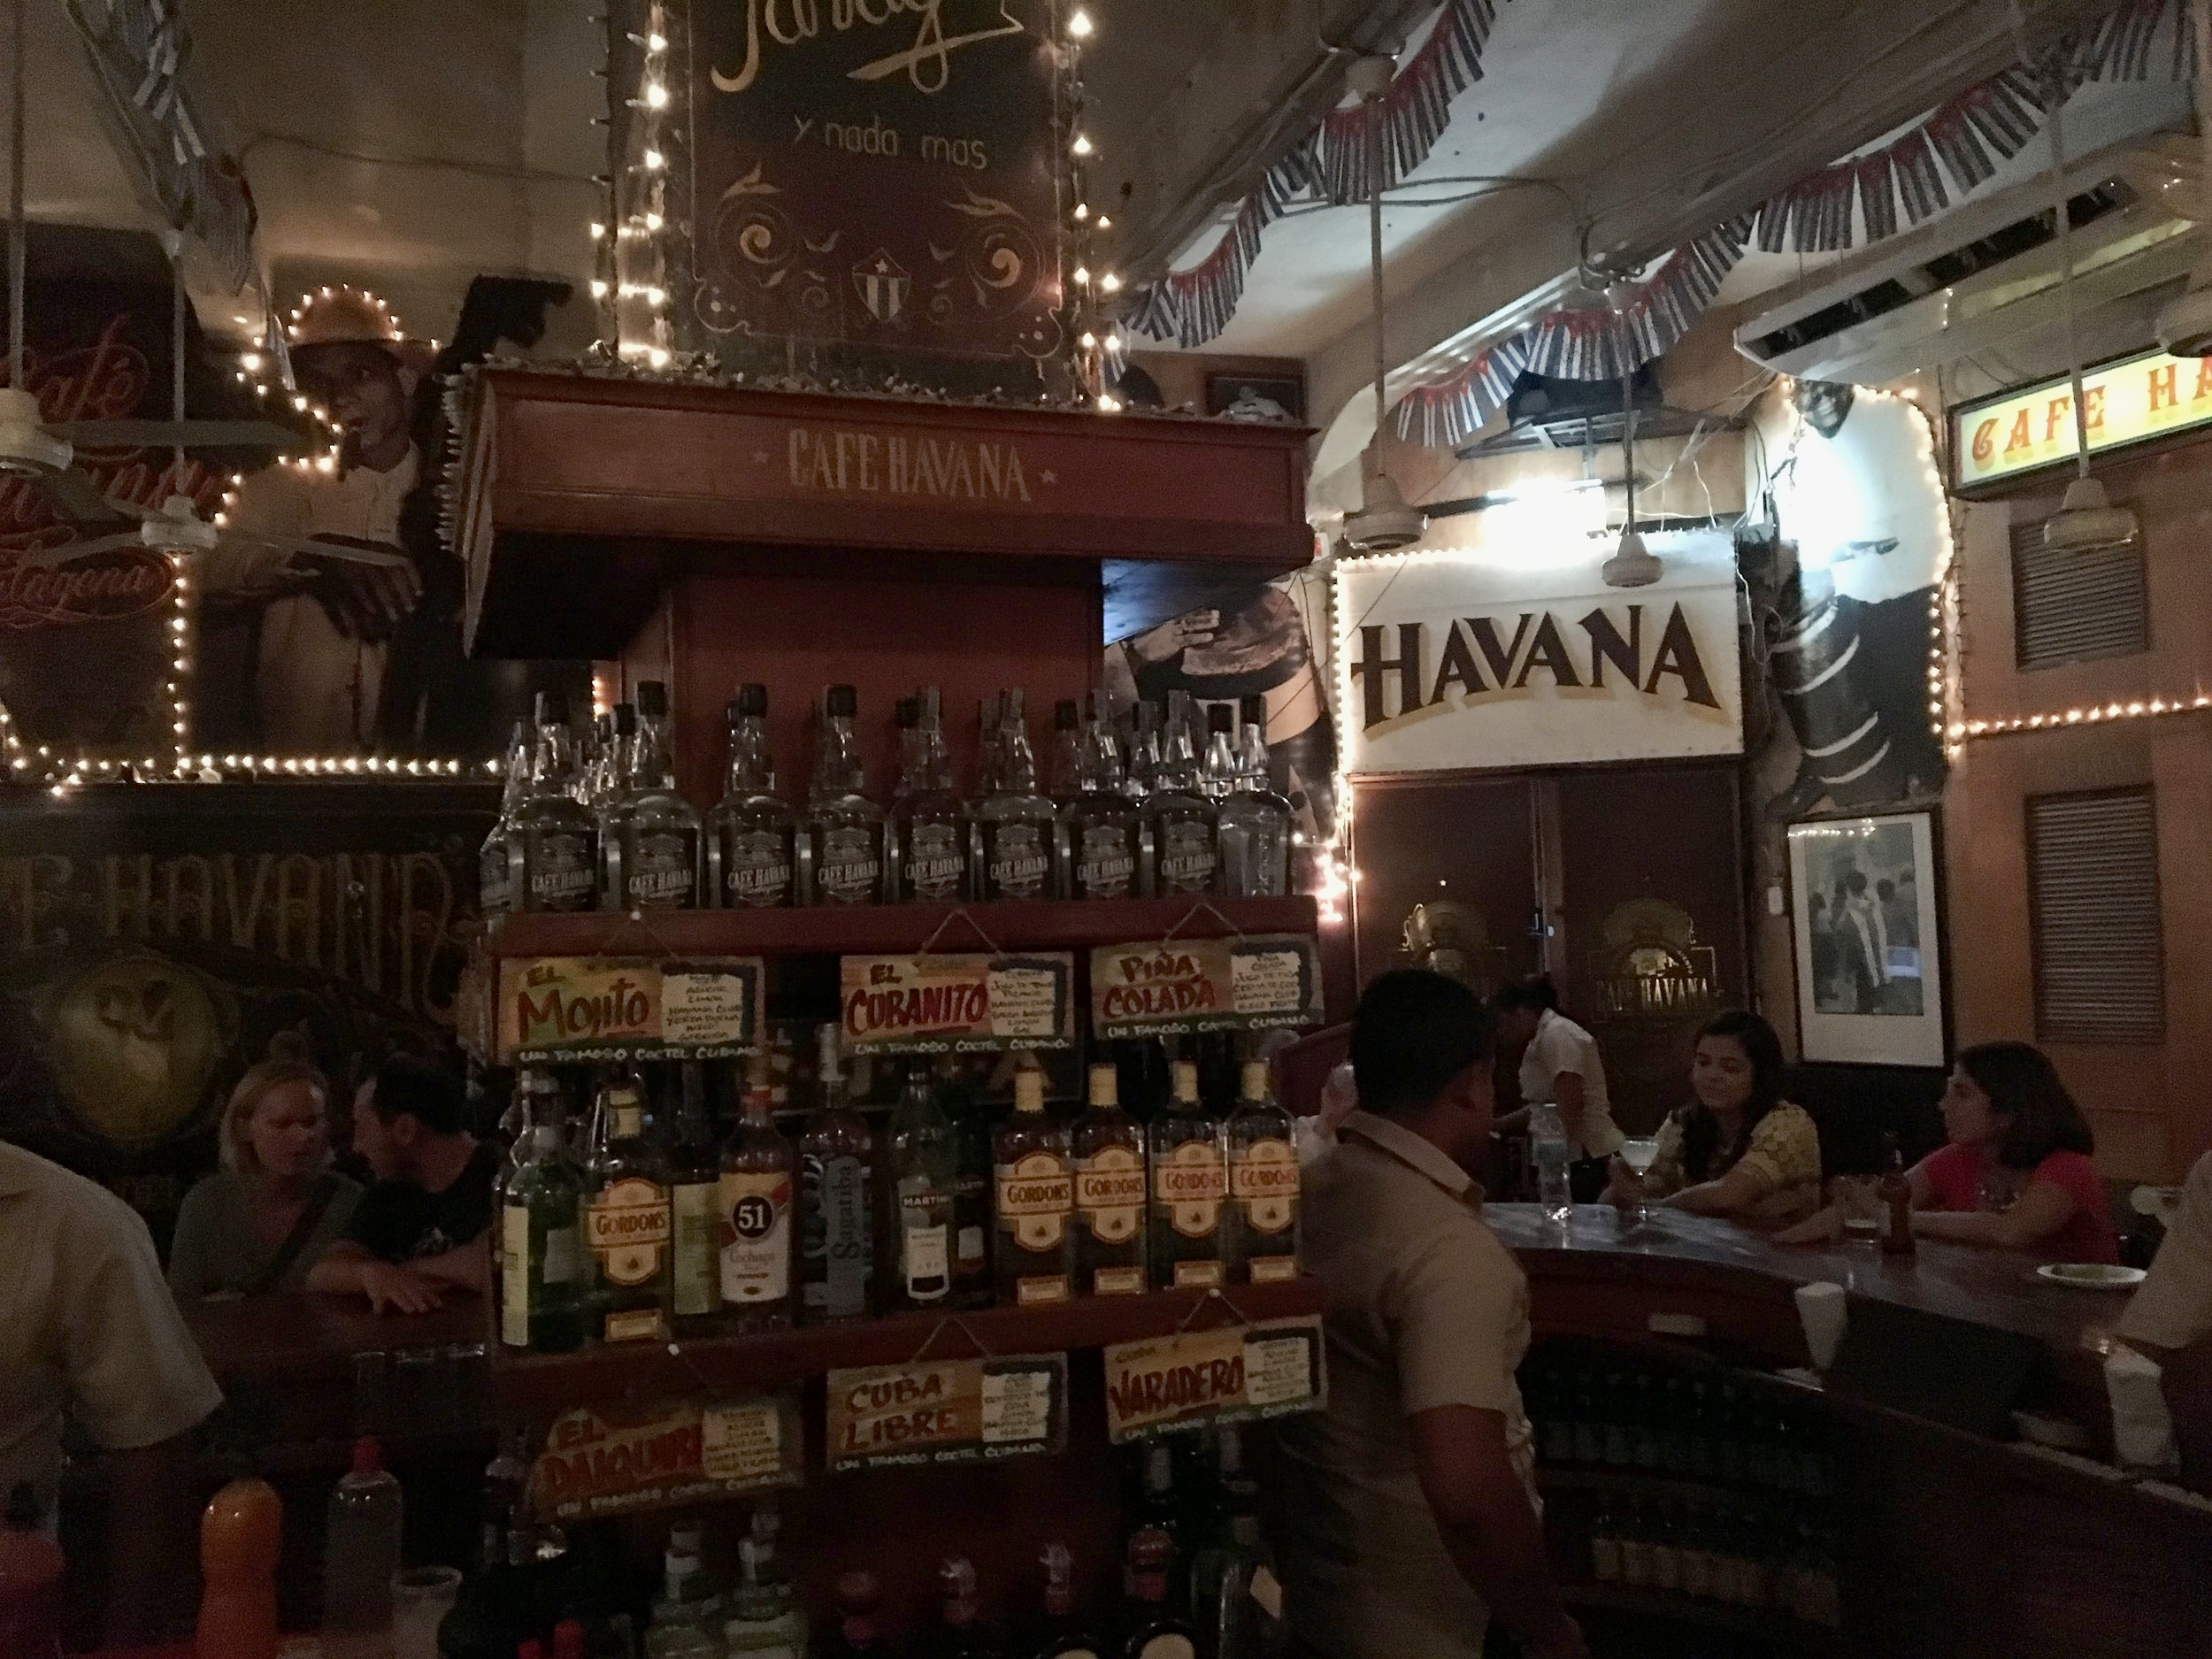 The very well-stocked bar at Cafe Havana (note the drink recipe cards!).